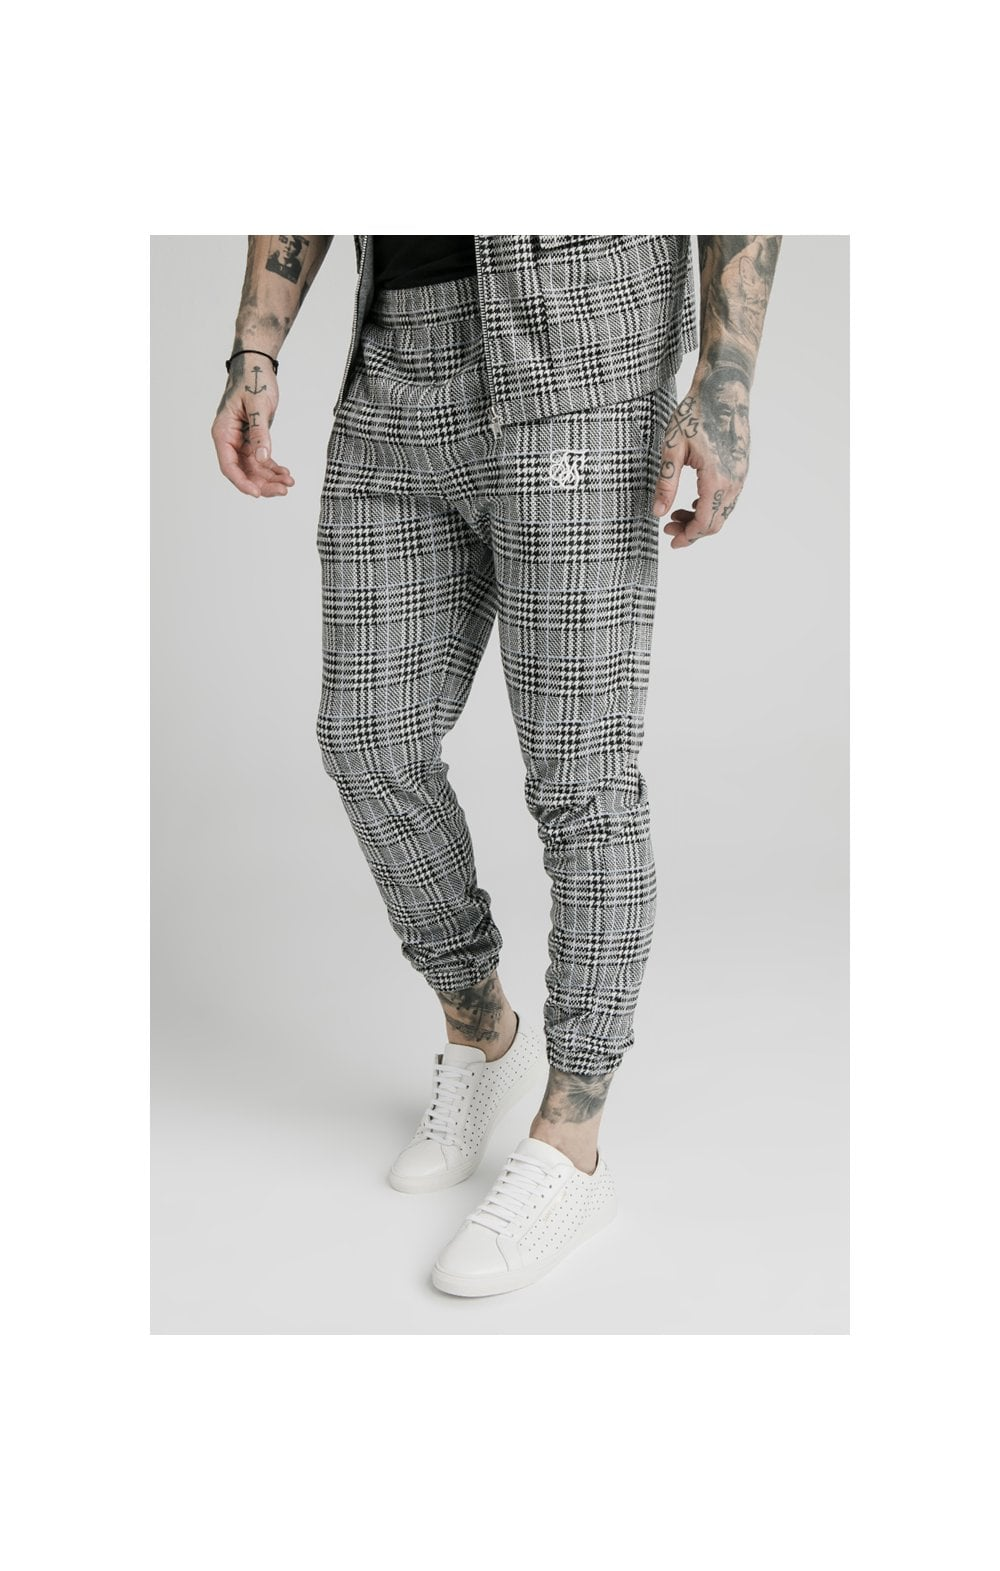 SikSilk Smart Cuff Pants - Grey Dogtooth MEN SIZES BOTTOM: Small 30in